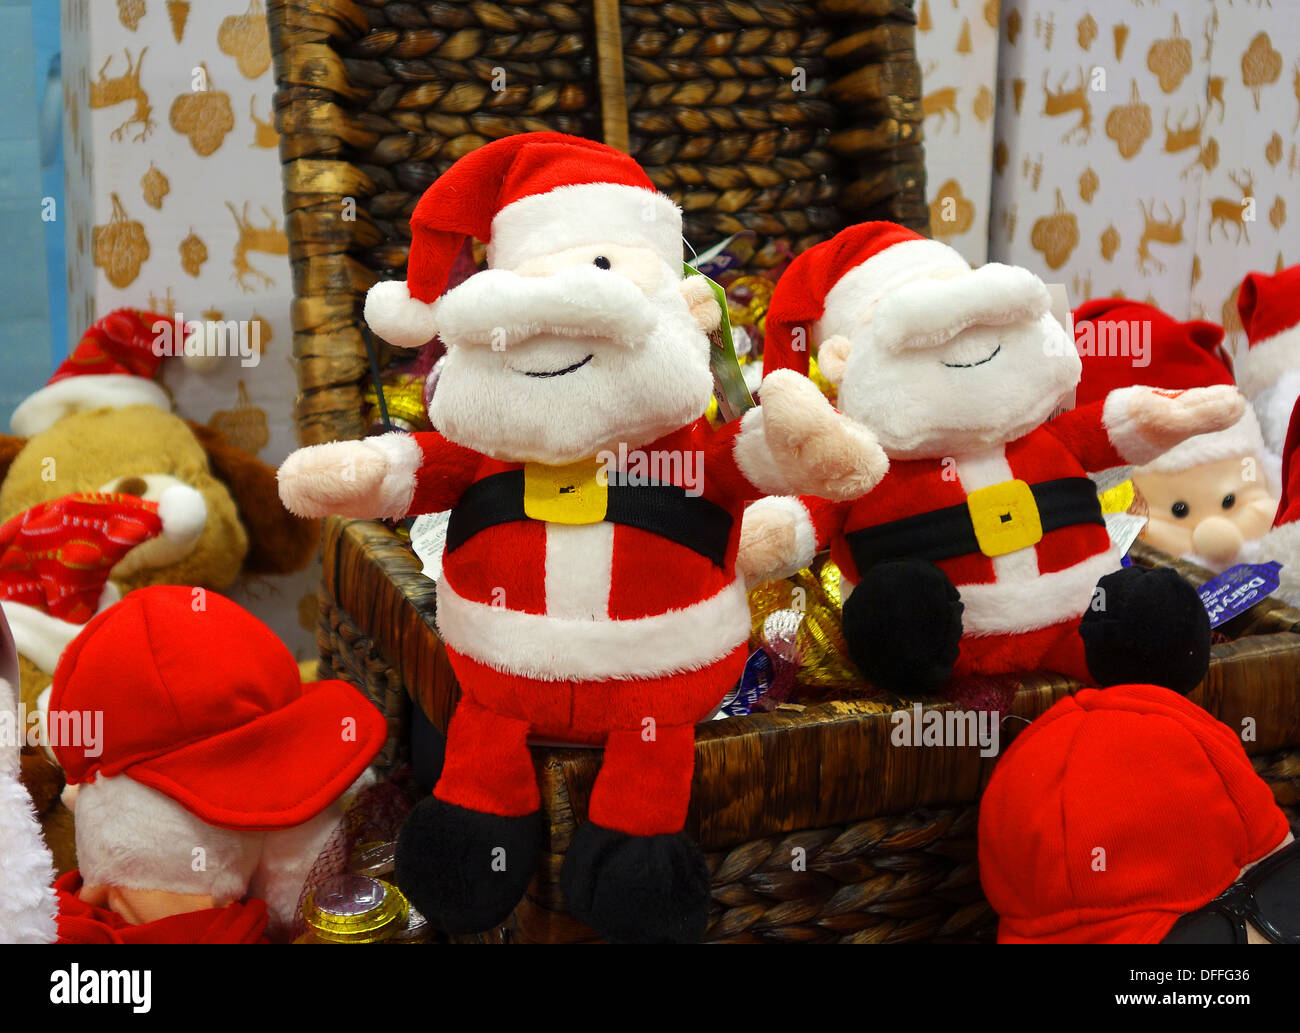 A display of christmas toys in a store Stock Photo